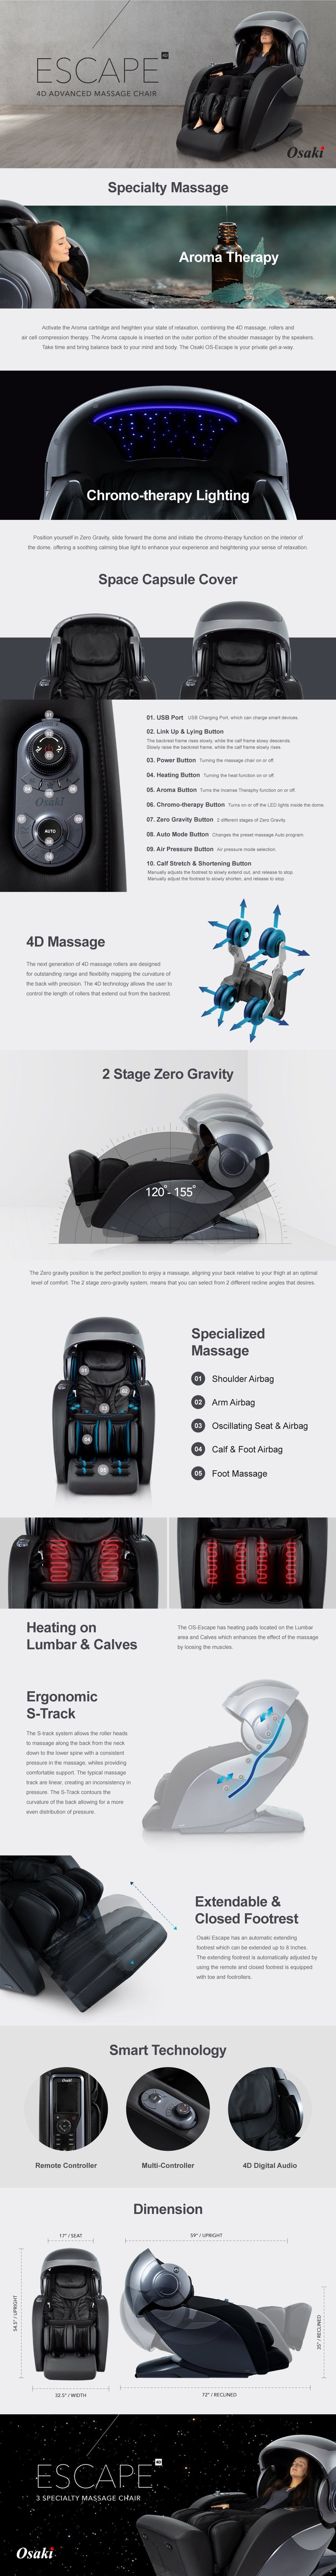 Image of massage chair description and features